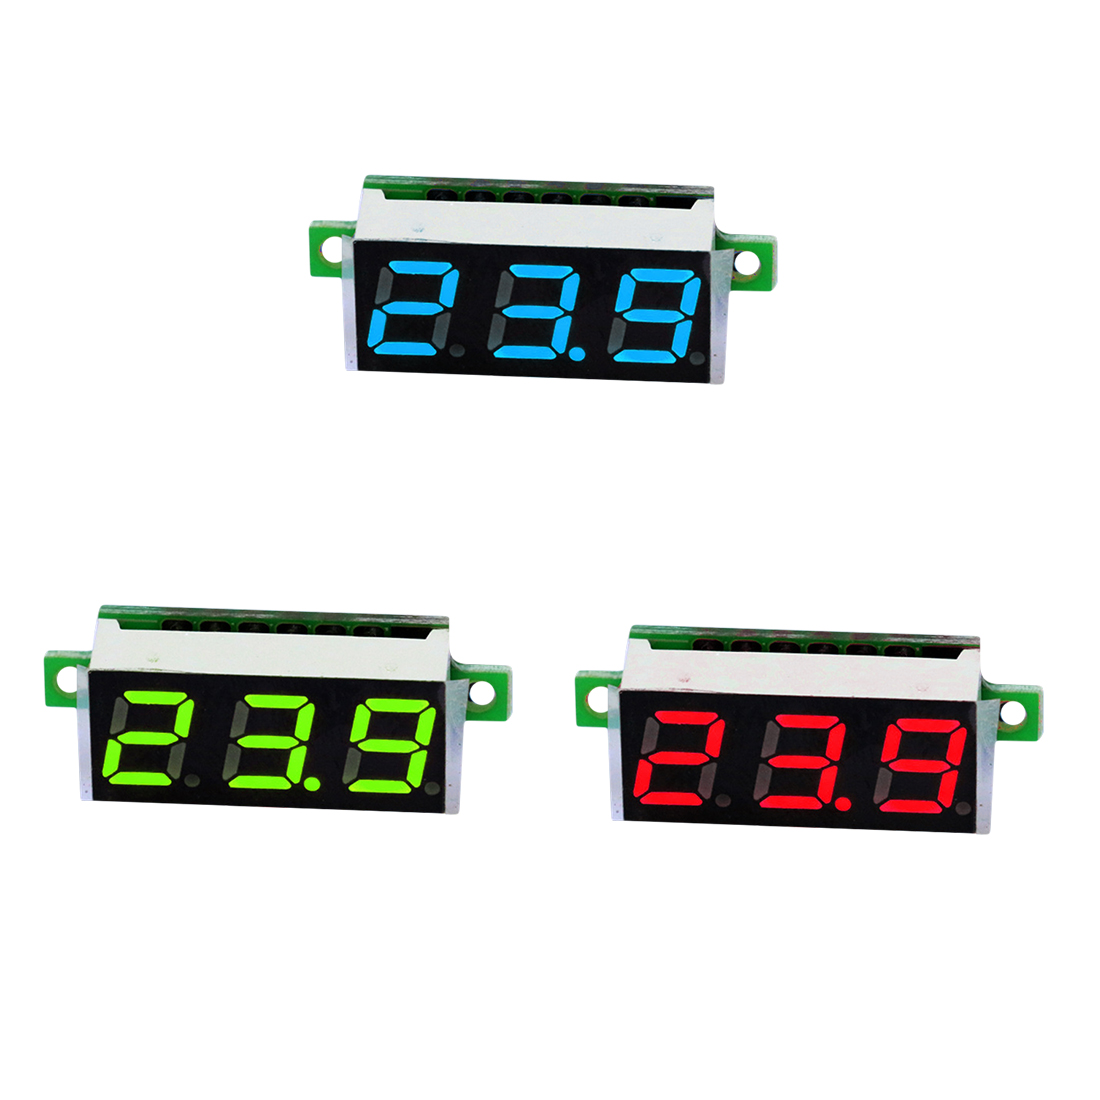 Mini Digital Voltmeter 0.28 Inch 2.5V-30V <font><b>Voltage</b></font> Tester Meter LED Screen Electronic Parts Accessories Digital Voltmeter image